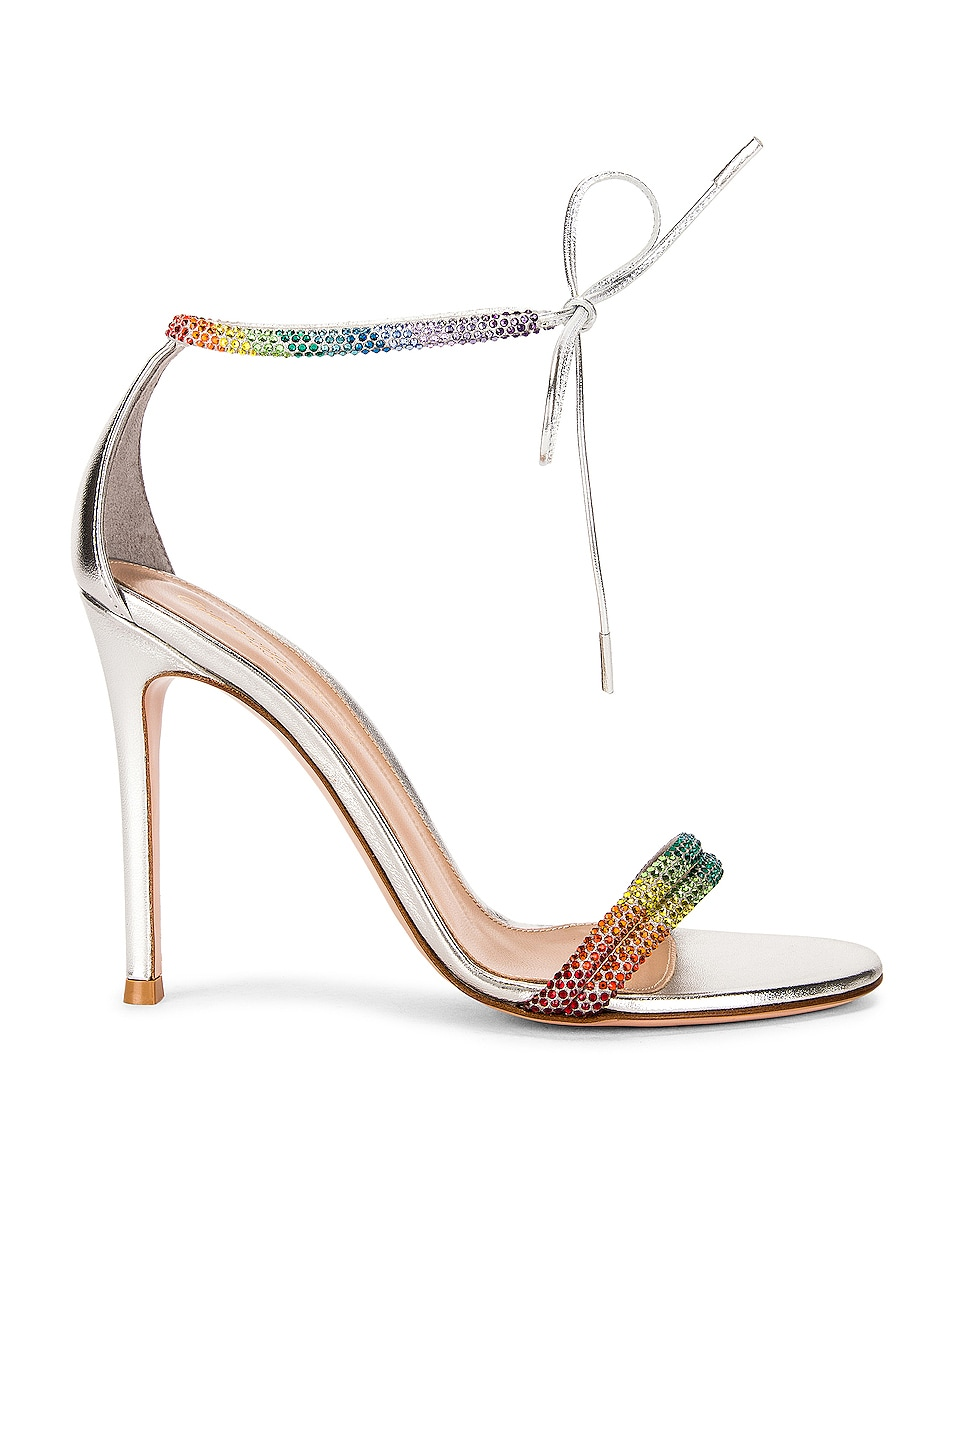 Image 1 of Gianvito Rossi Ankle Strap Pumps in Silver & Rainbow